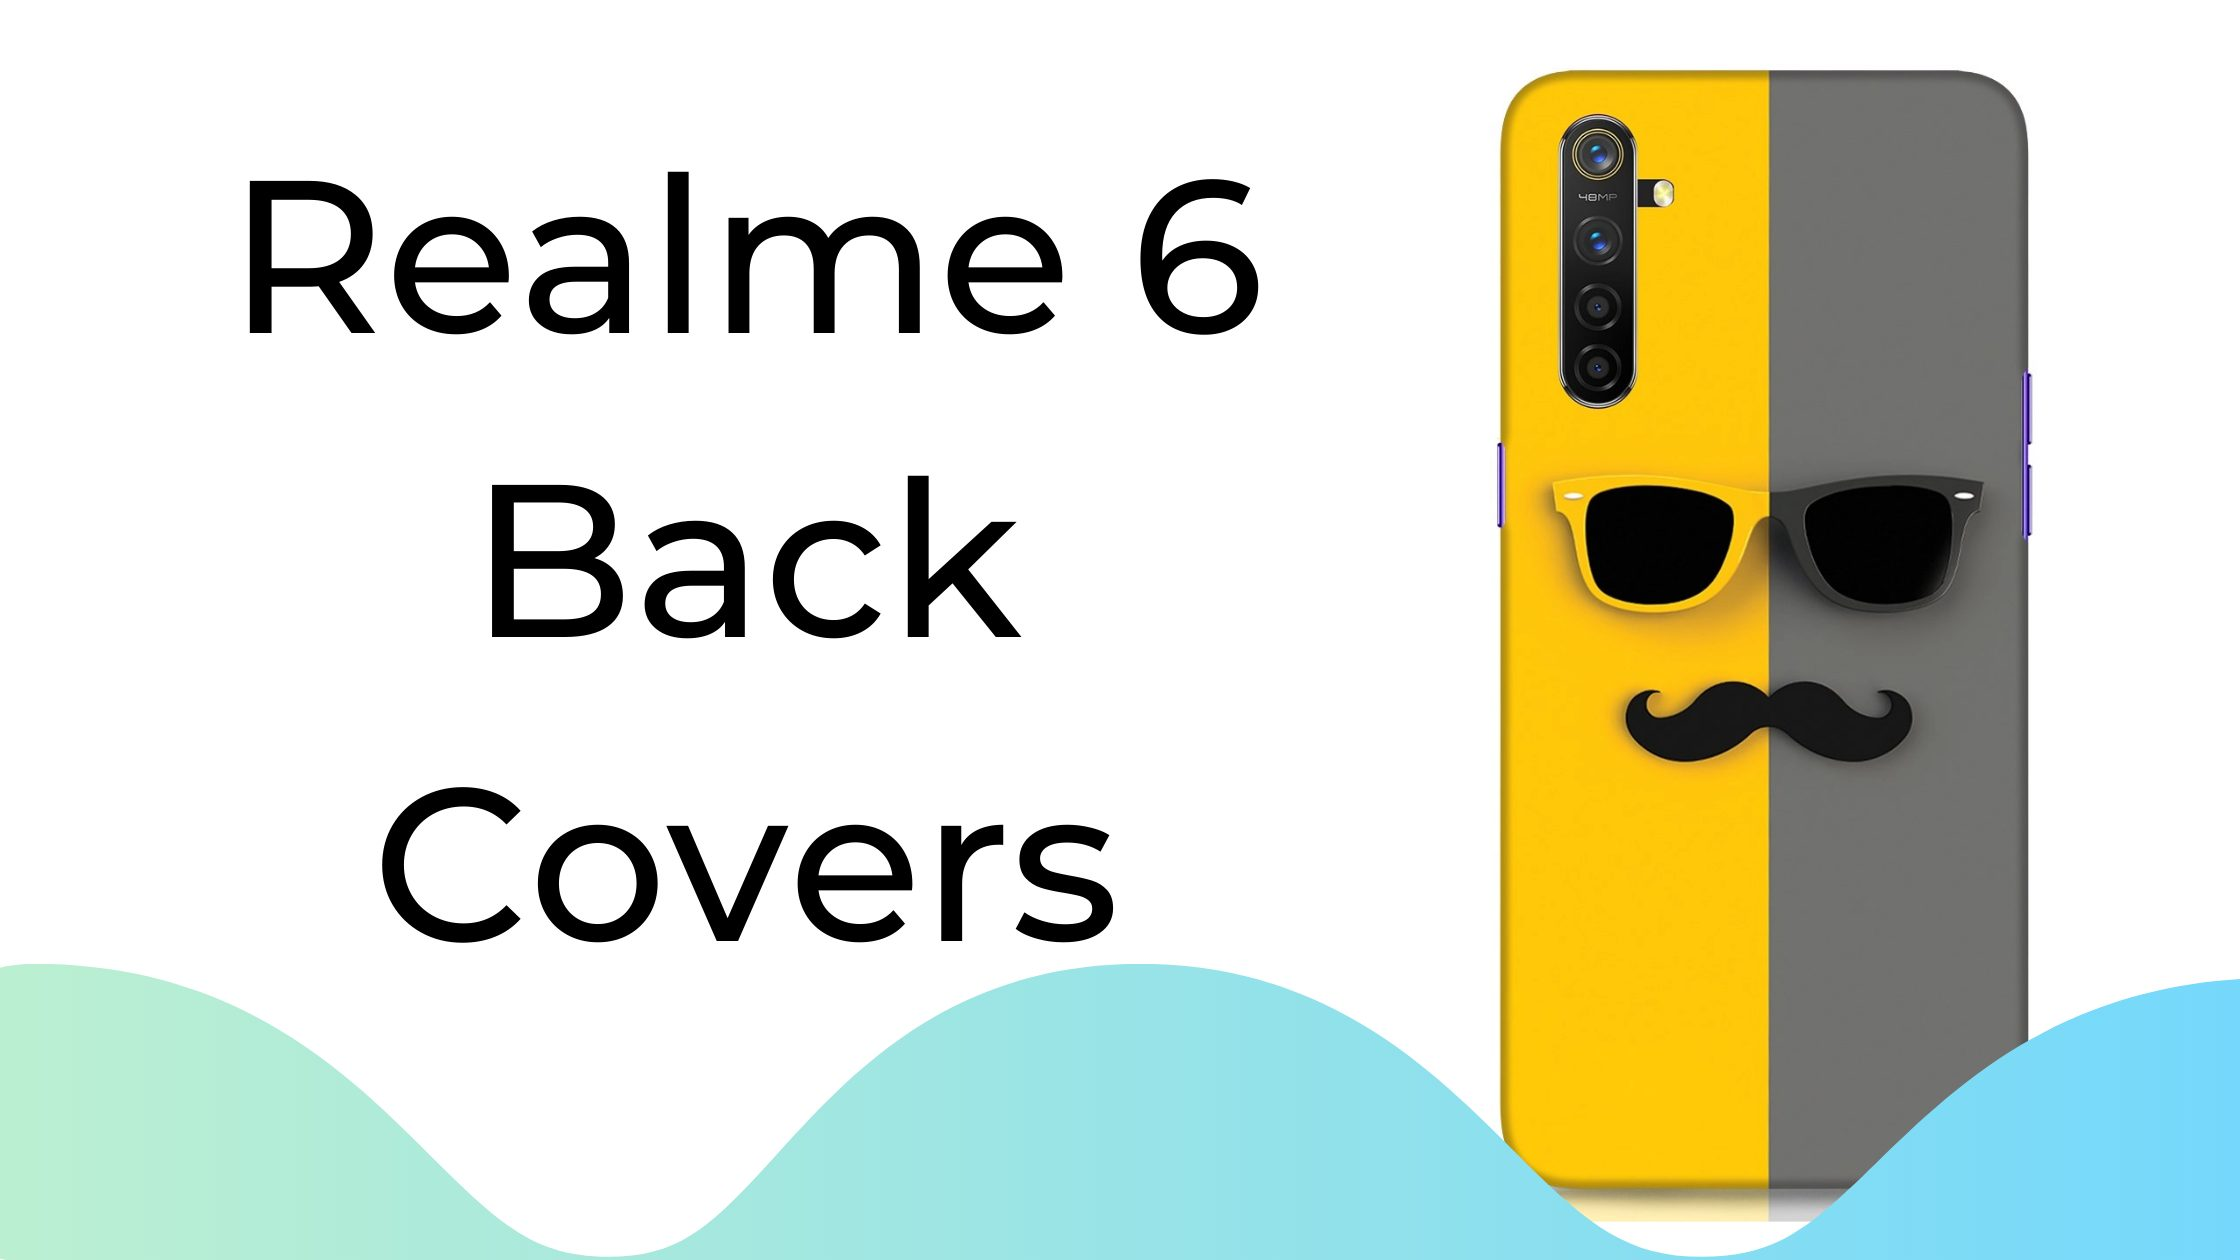 Realme 6 Back Covers